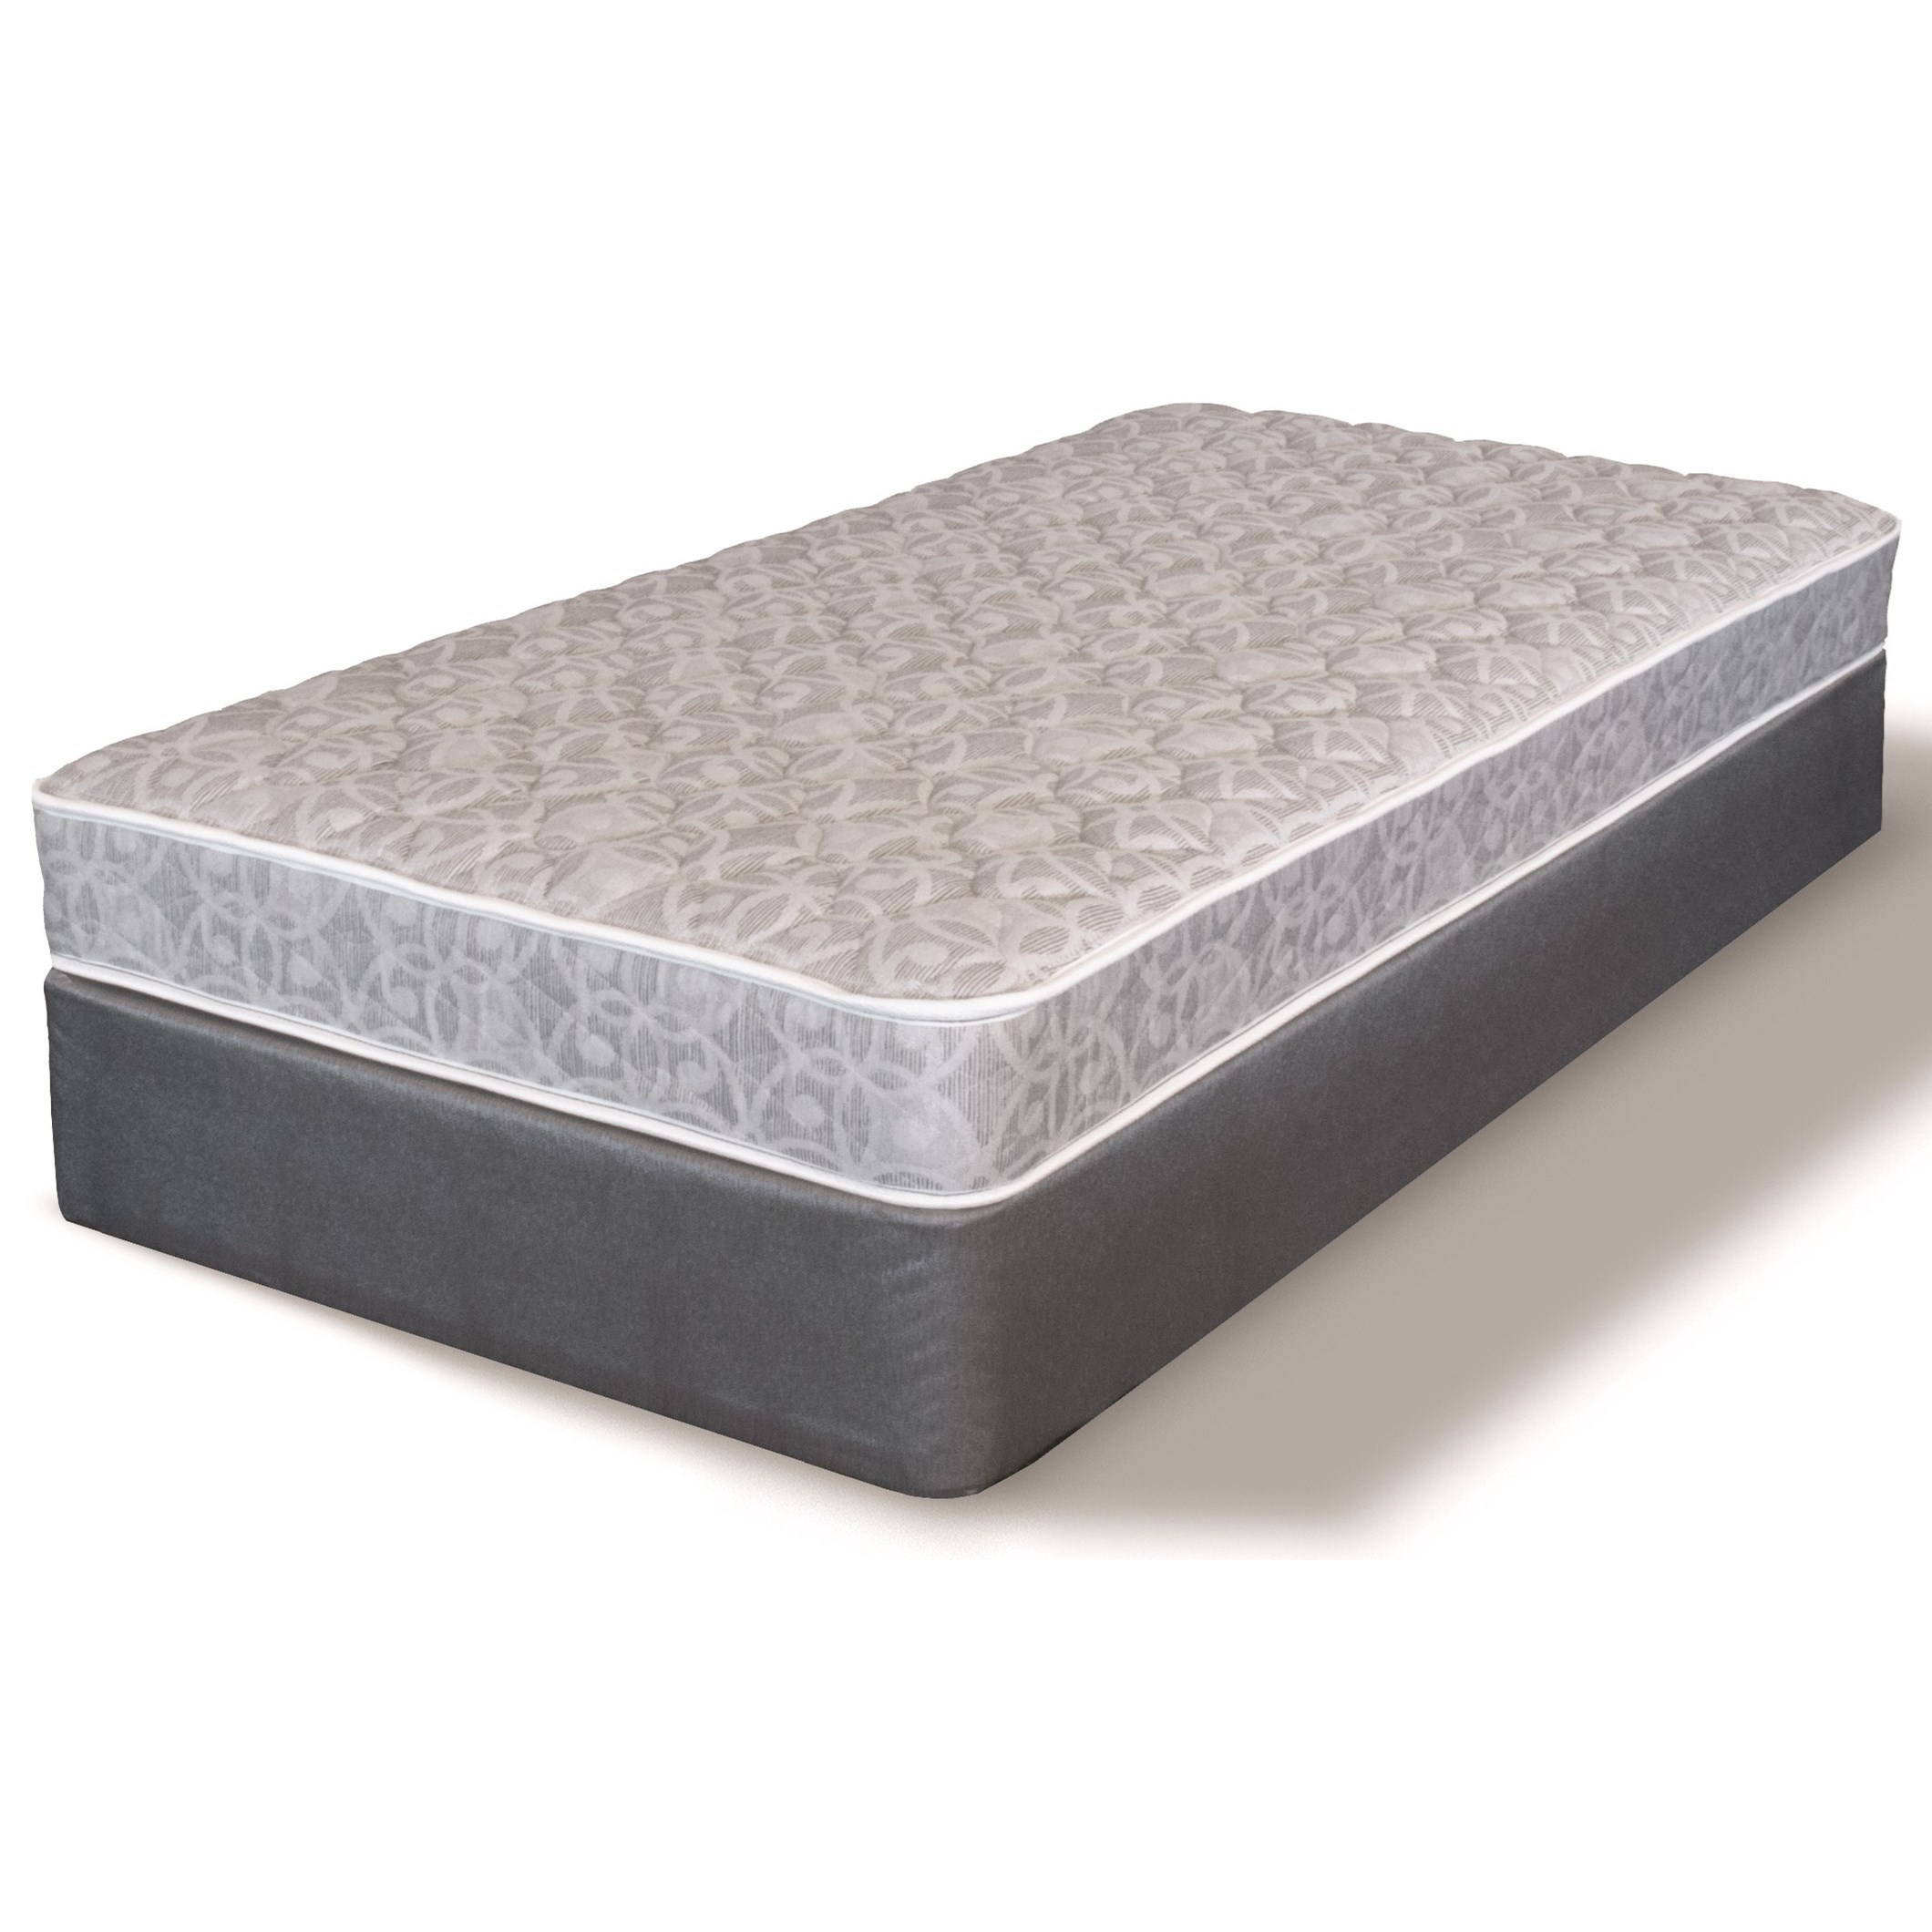 Low Profile Innerspring Mattress Serta Ms Galway Place Firm Full Firm Innerspring Mattress